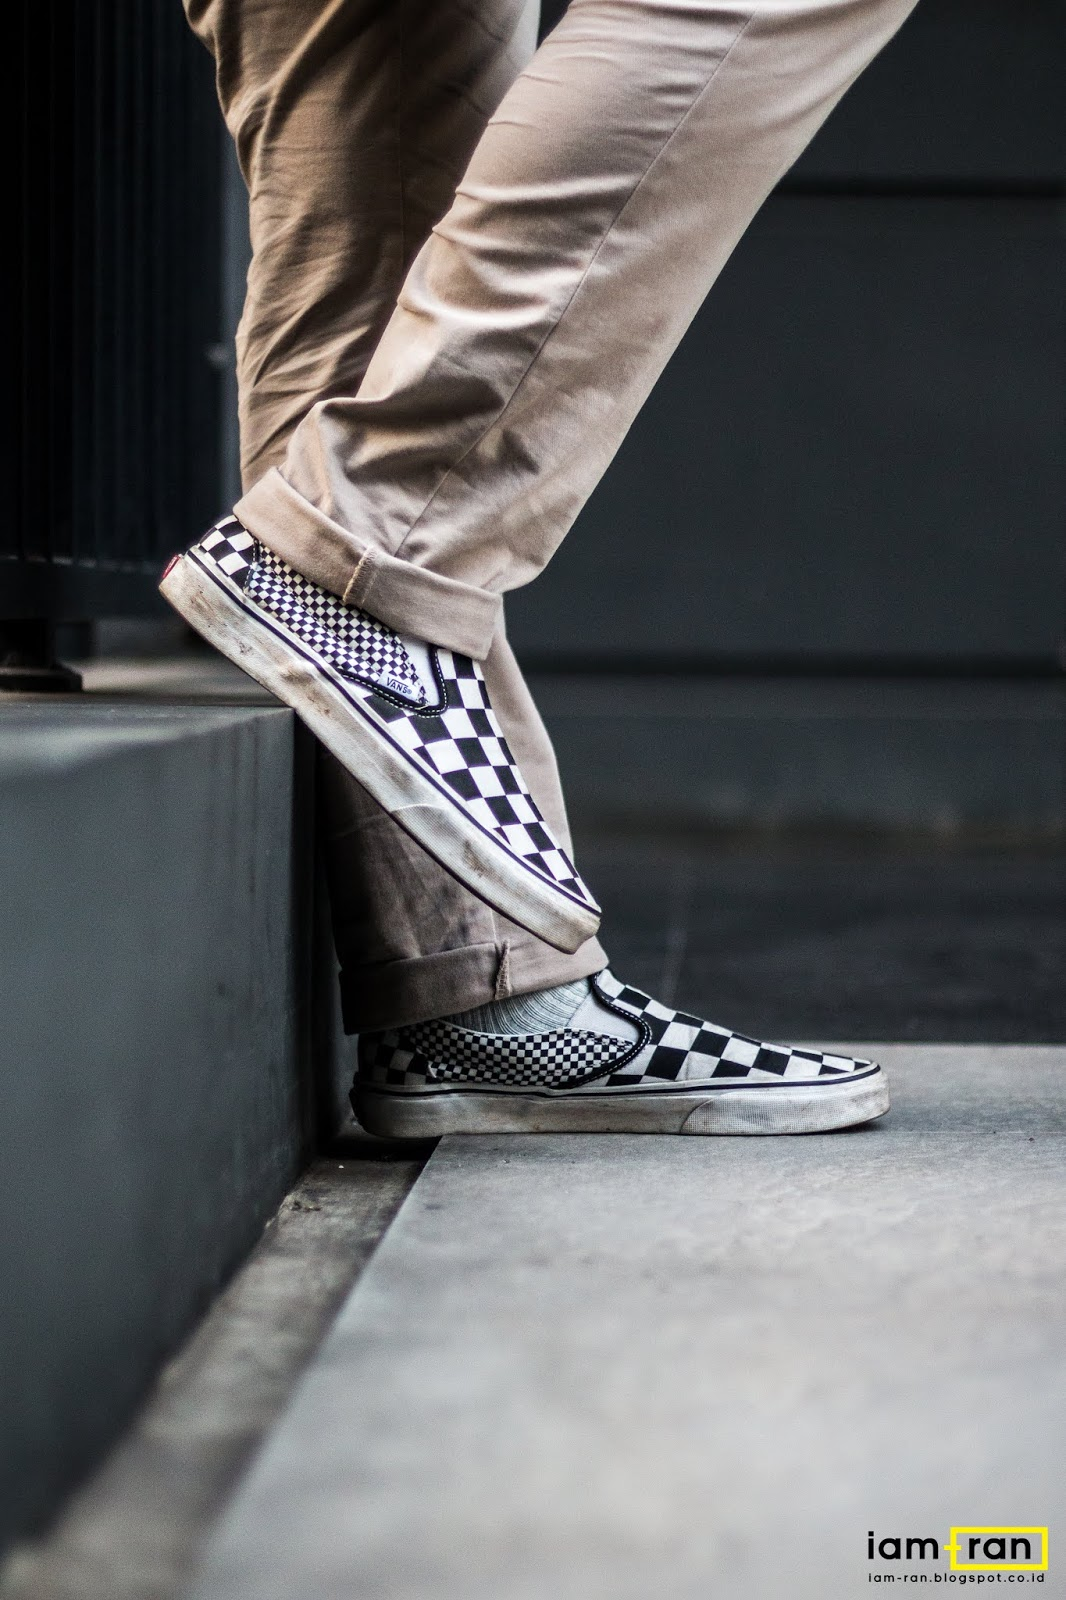 e83057aa5fad13 Arfan Okky on feet   Sneakers   Vans Classic Slip on Mix Checkerboard Photo  by   iam.ran06